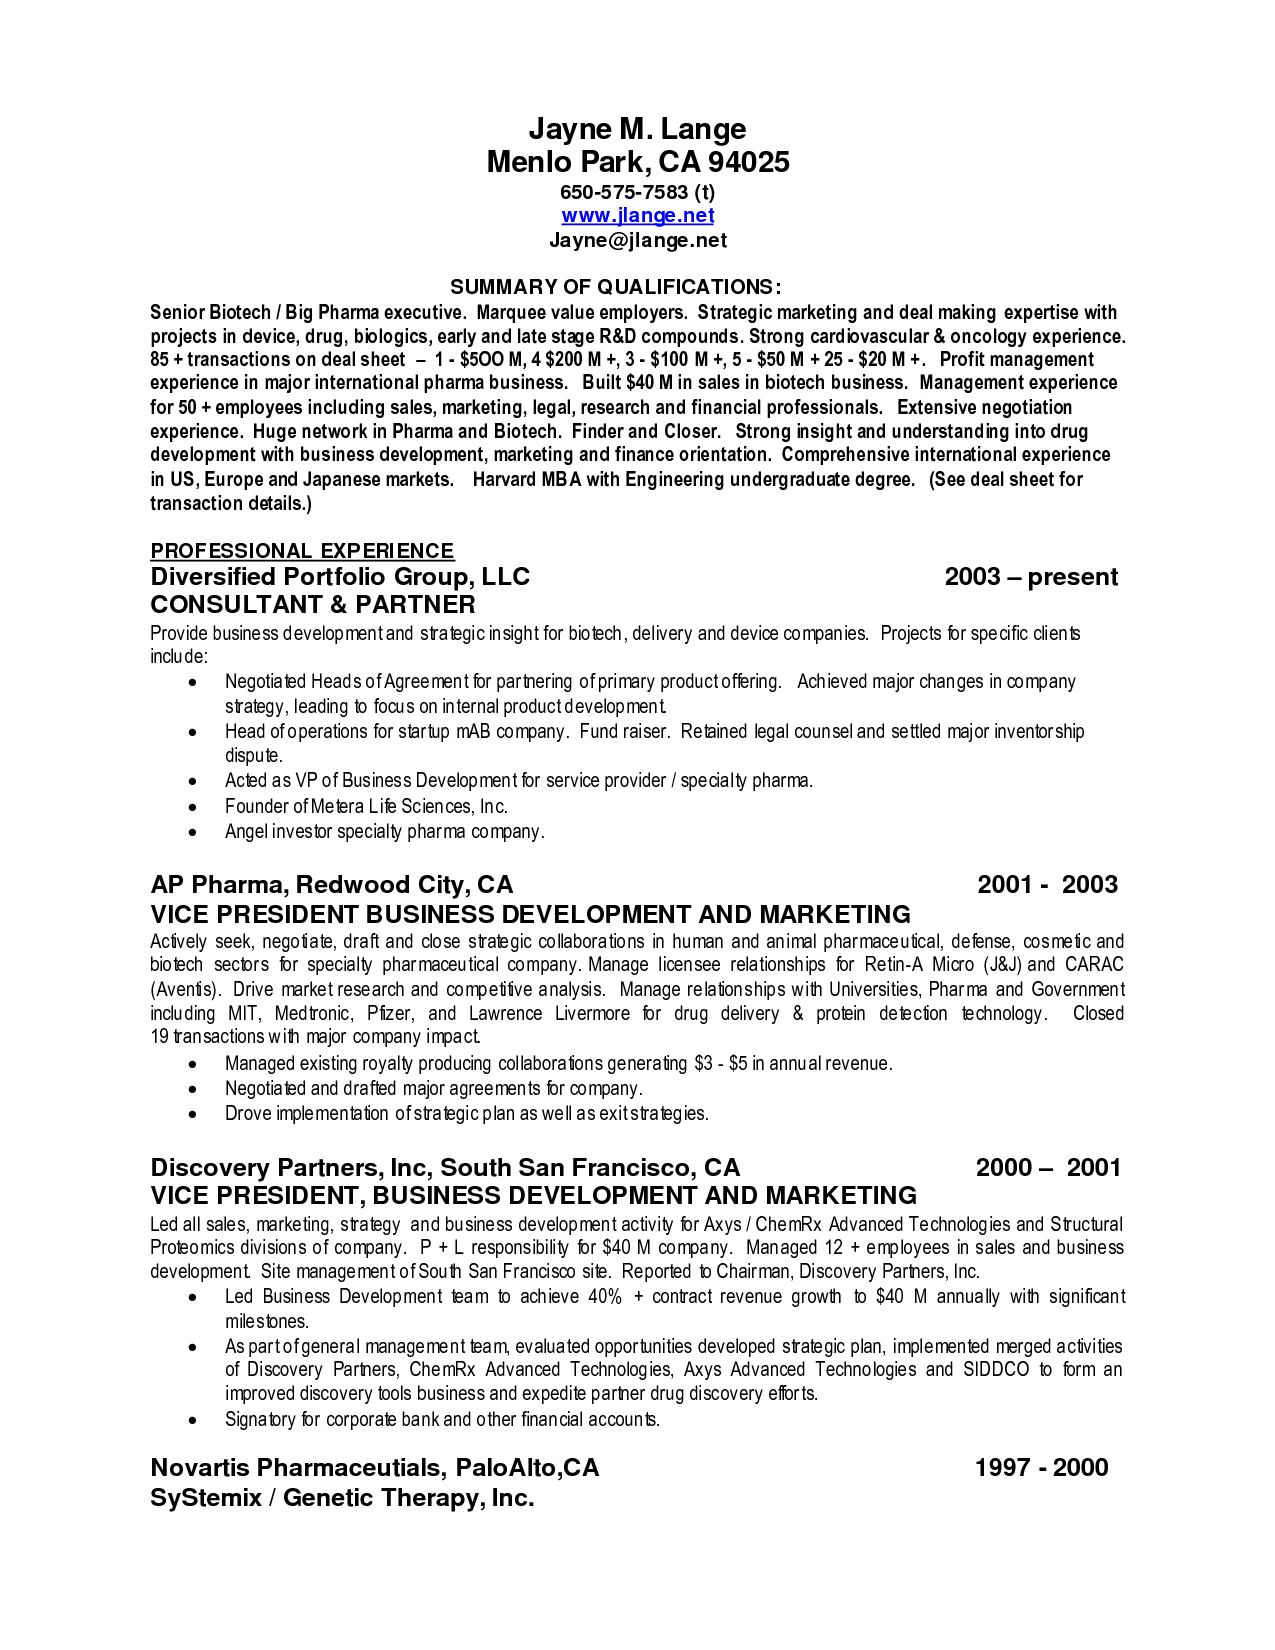 Amazing Sales Resume Summary Of Qualifications Examples Intended Summary Of Qualifications For Resume